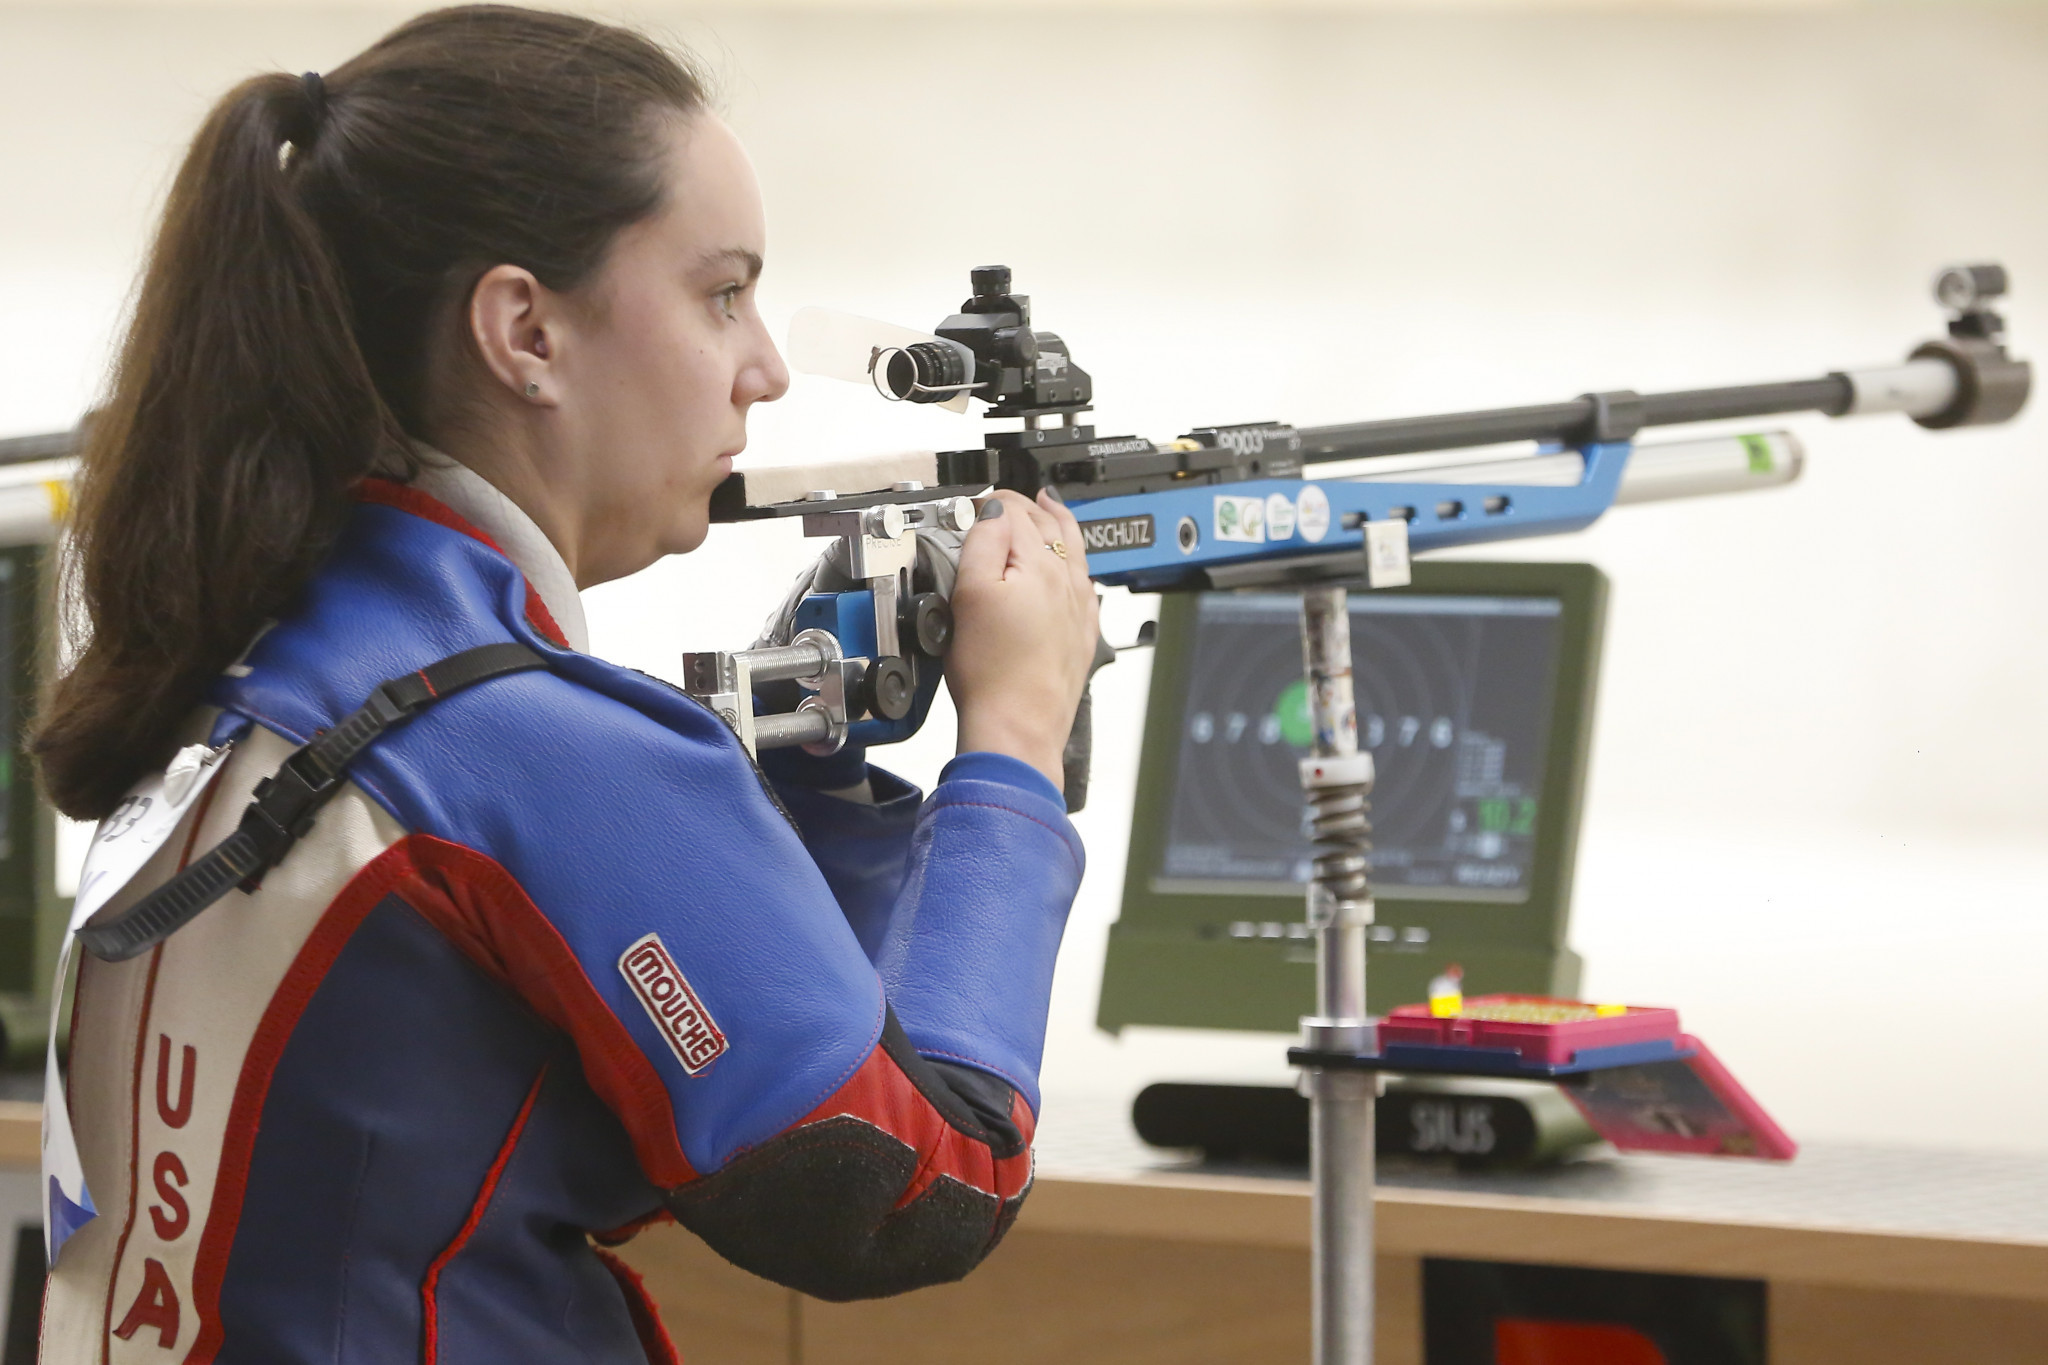 Mckenna Dahl of the United States was the victor in the mixed 10 metre air rifle stand SH2 at the Lima 2019 Parapan American Games ©Lima 2019